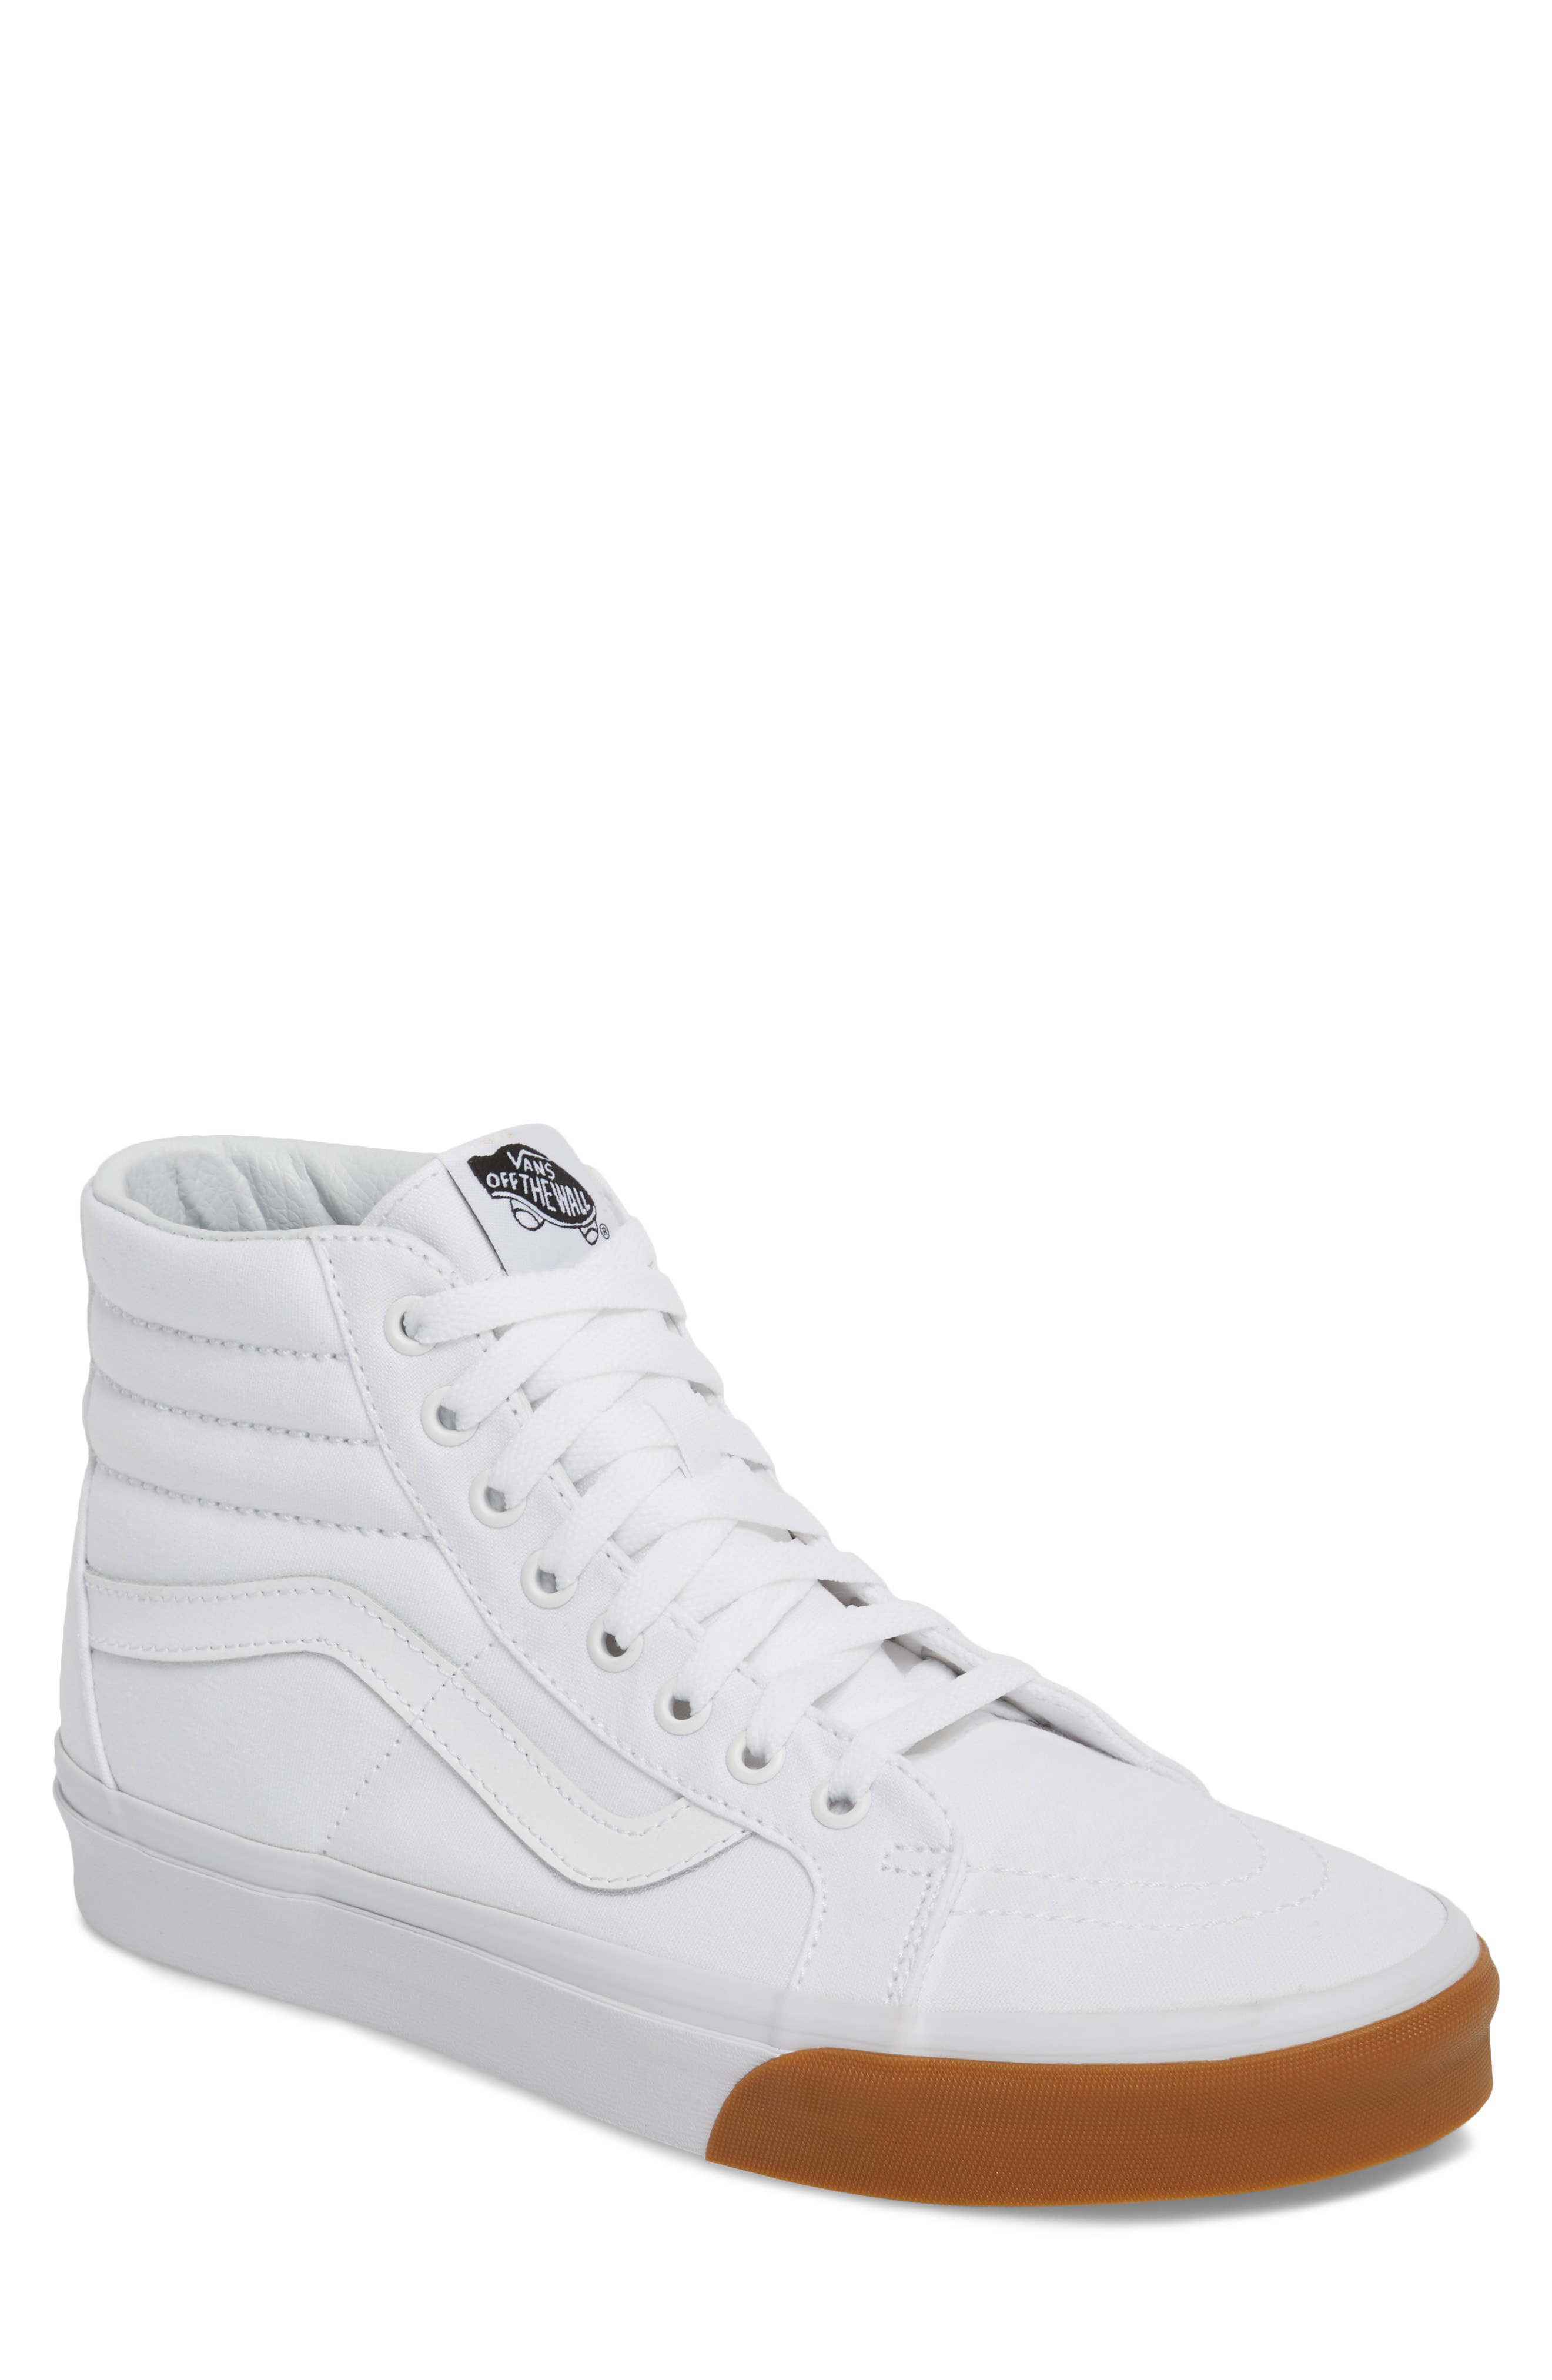 b356414b3d Tough canvas construction elevates a high-top sneaker stamped with cool  branding. Style Name  Vans  sk8-Hi Reissue  Sneaker (Men). Style Number   1033995 8.